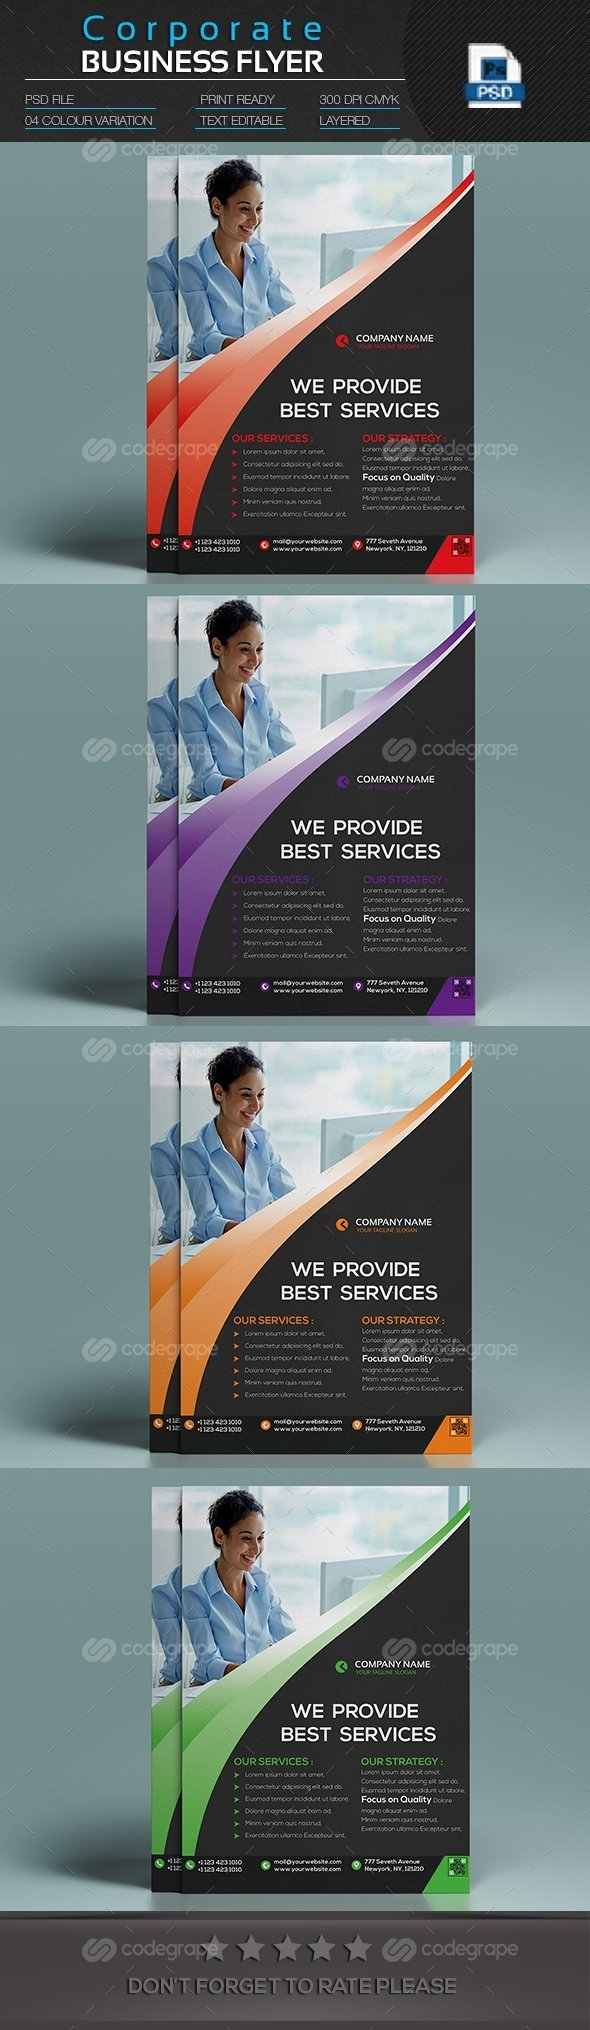 codegrape-9879-corporate-business-flyer